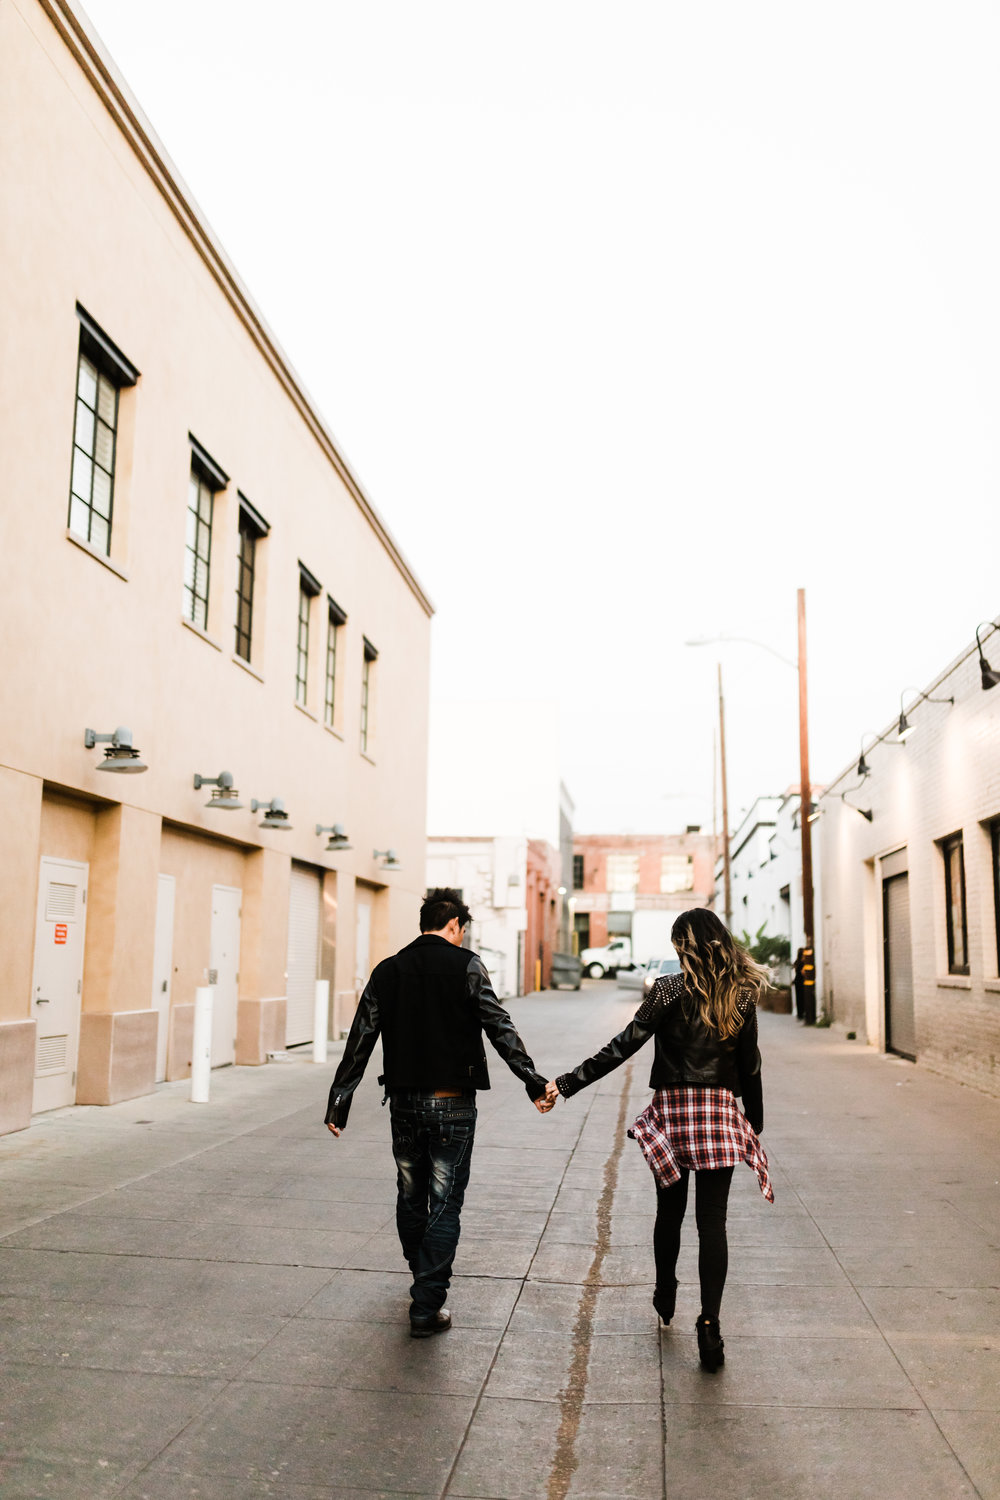 Sarah & Leonard - Colorado Street Bridge, Old Town Pasadena, CA - Engagement Session | CRM Media - Southern California Wedding Photographer & Videographer | www.crm-media.com